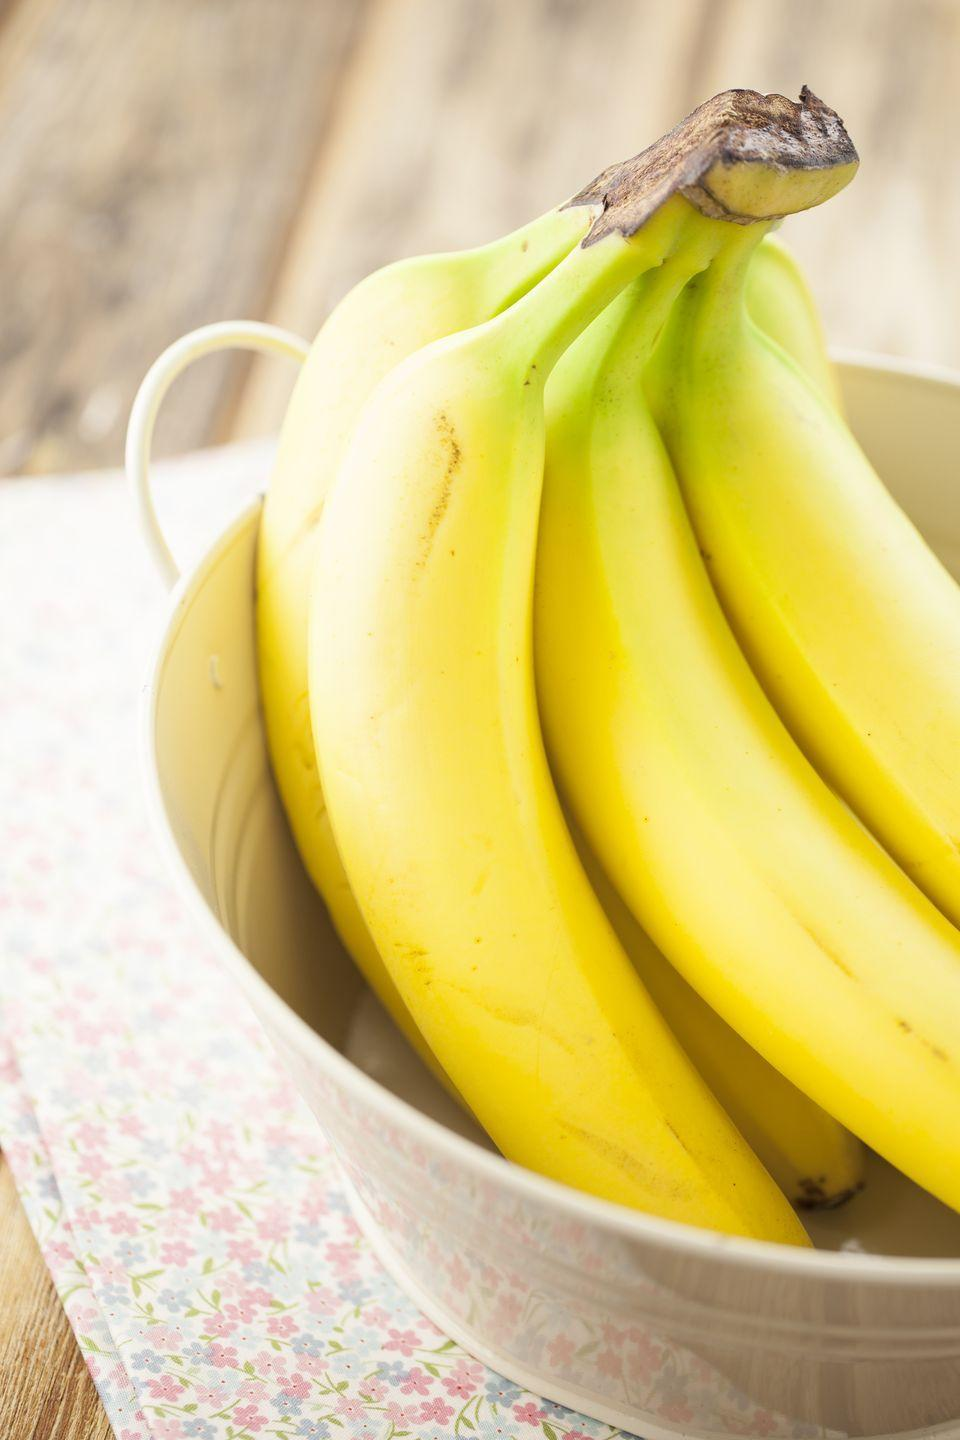 "<p>Bananas lower cholesterol by <a href=""https://www.goodhousekeeping.com/health/diet-nutrition/a47807/banana-nutrition/"" rel=""nofollow noopener"" target=""_blank"" data-ylk=""slk:removing it from your digestive system"" class=""link rapid-noclick-resp"">removing it from your digestive system</a>, preventing it from moving into your bloodstream and clogging your arteries. For an extra heart-healthy boost, slice bananas on top of morning oats with a tablespoon of chia seeds.</p>"